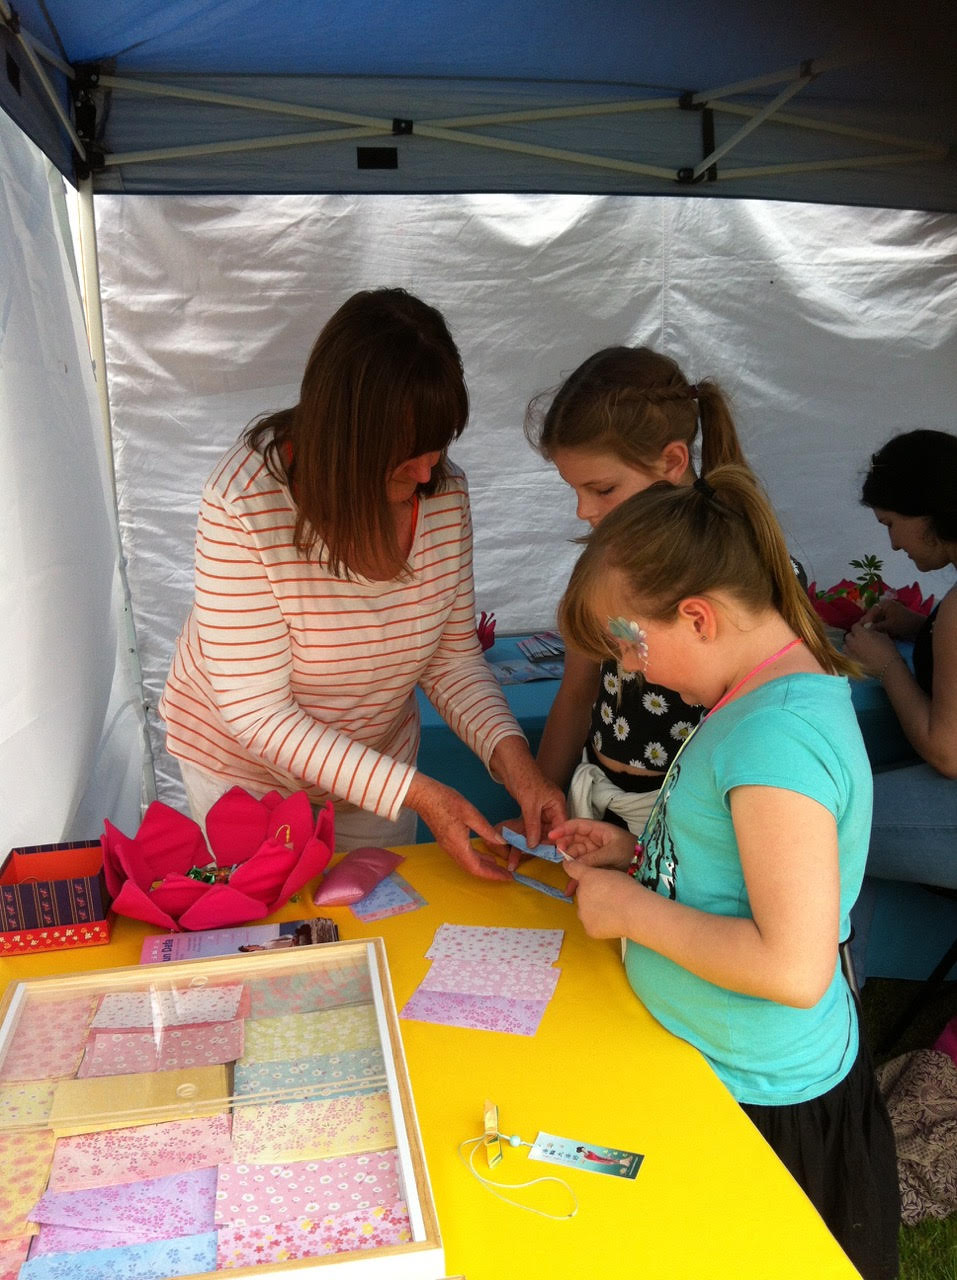 Janine teaching how to make a paper lotus flower with children choosing bright coloured origami paper. Image: Janine Rankin